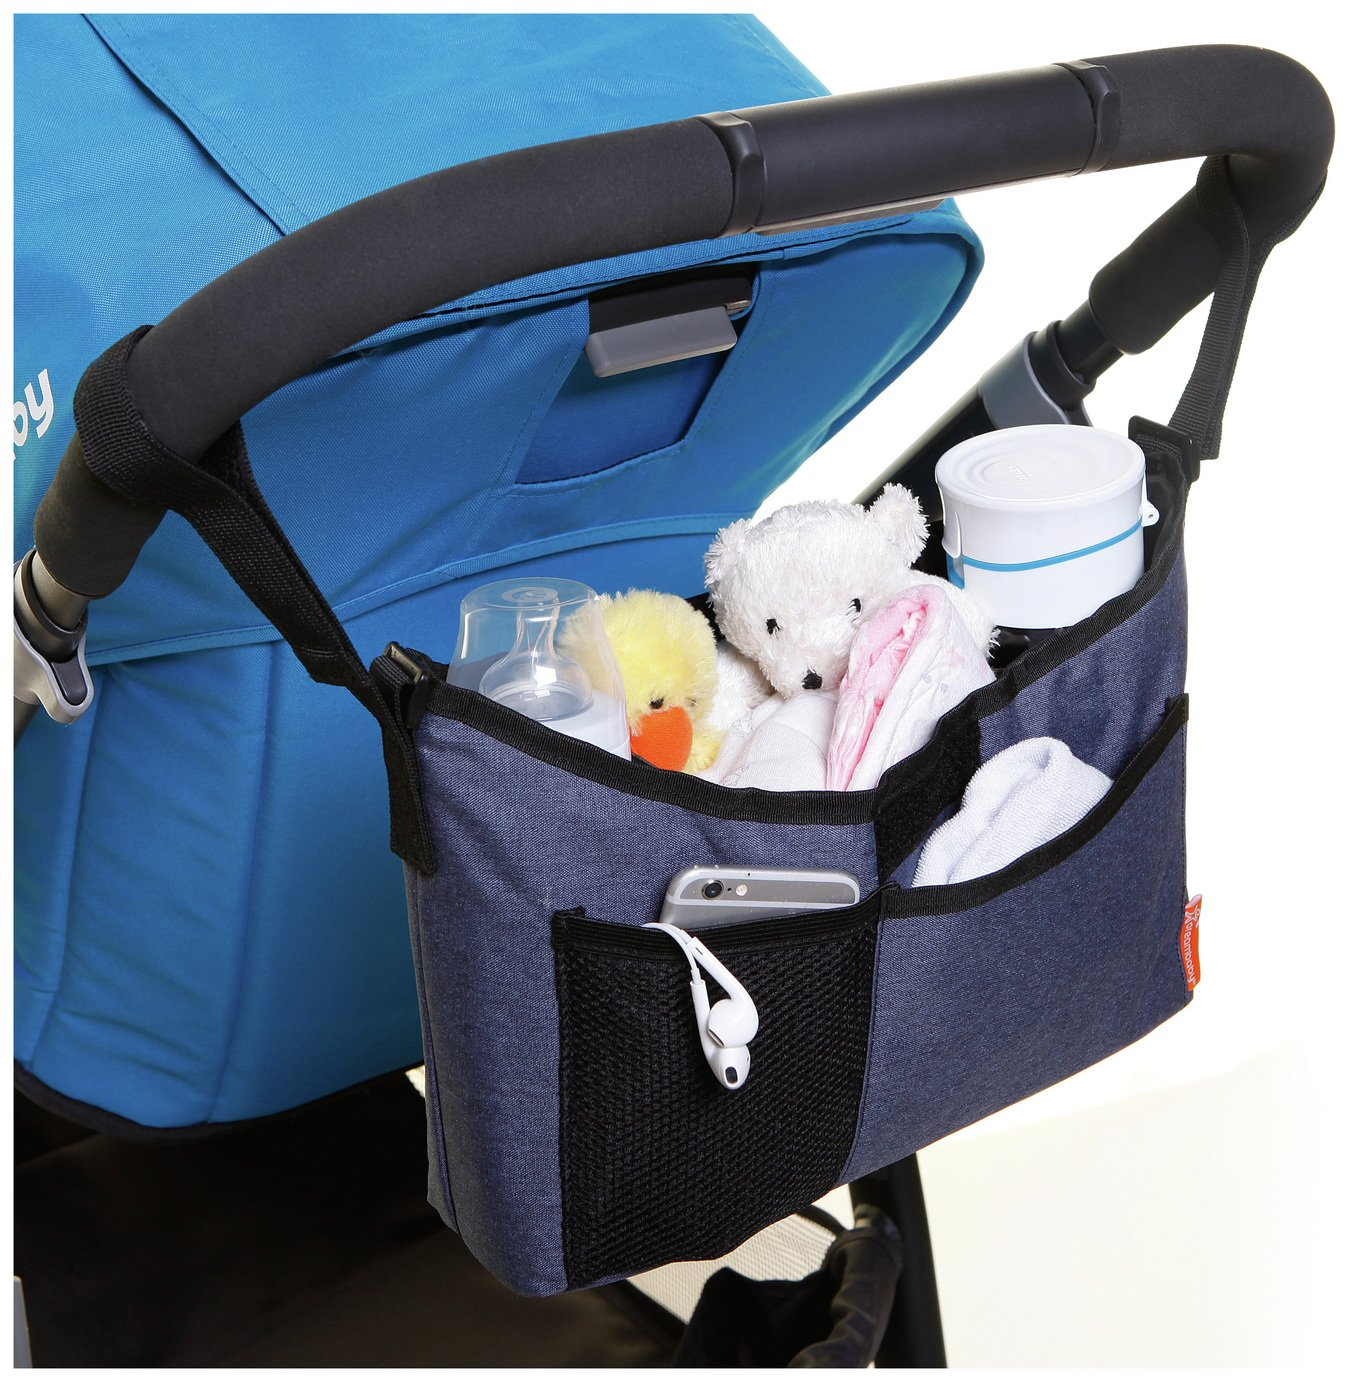 Image of Dreambaby Strollerbuddy On-The-Go Bag ??? Blue